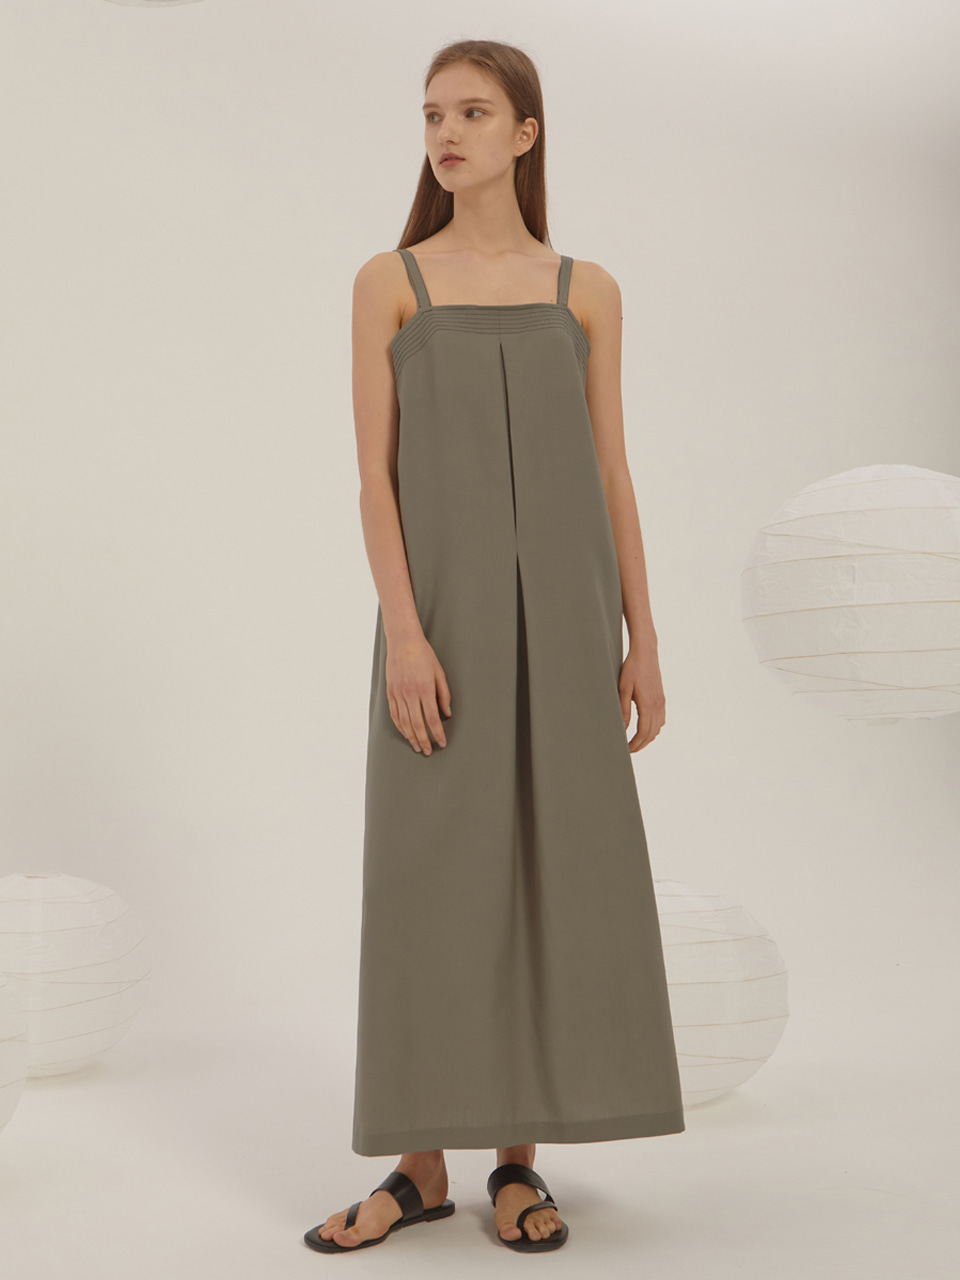 SUMMER WOOL SLEEVELESS DRESS_Olive